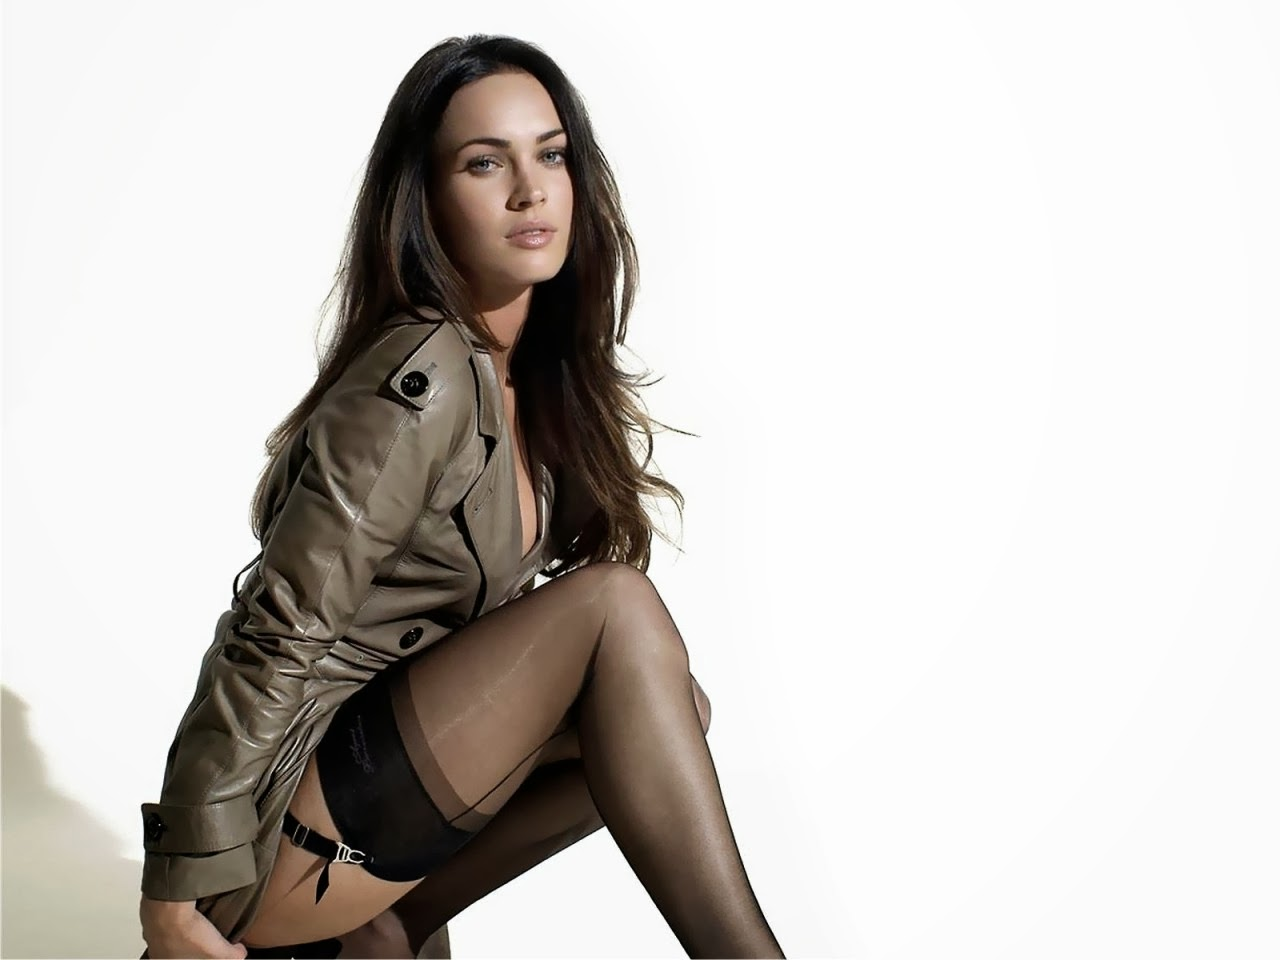 Best Megan Fox Hollywood Hottest Actress Hd Wallpaper And Pictures - Top Hd Wallpaper -3555